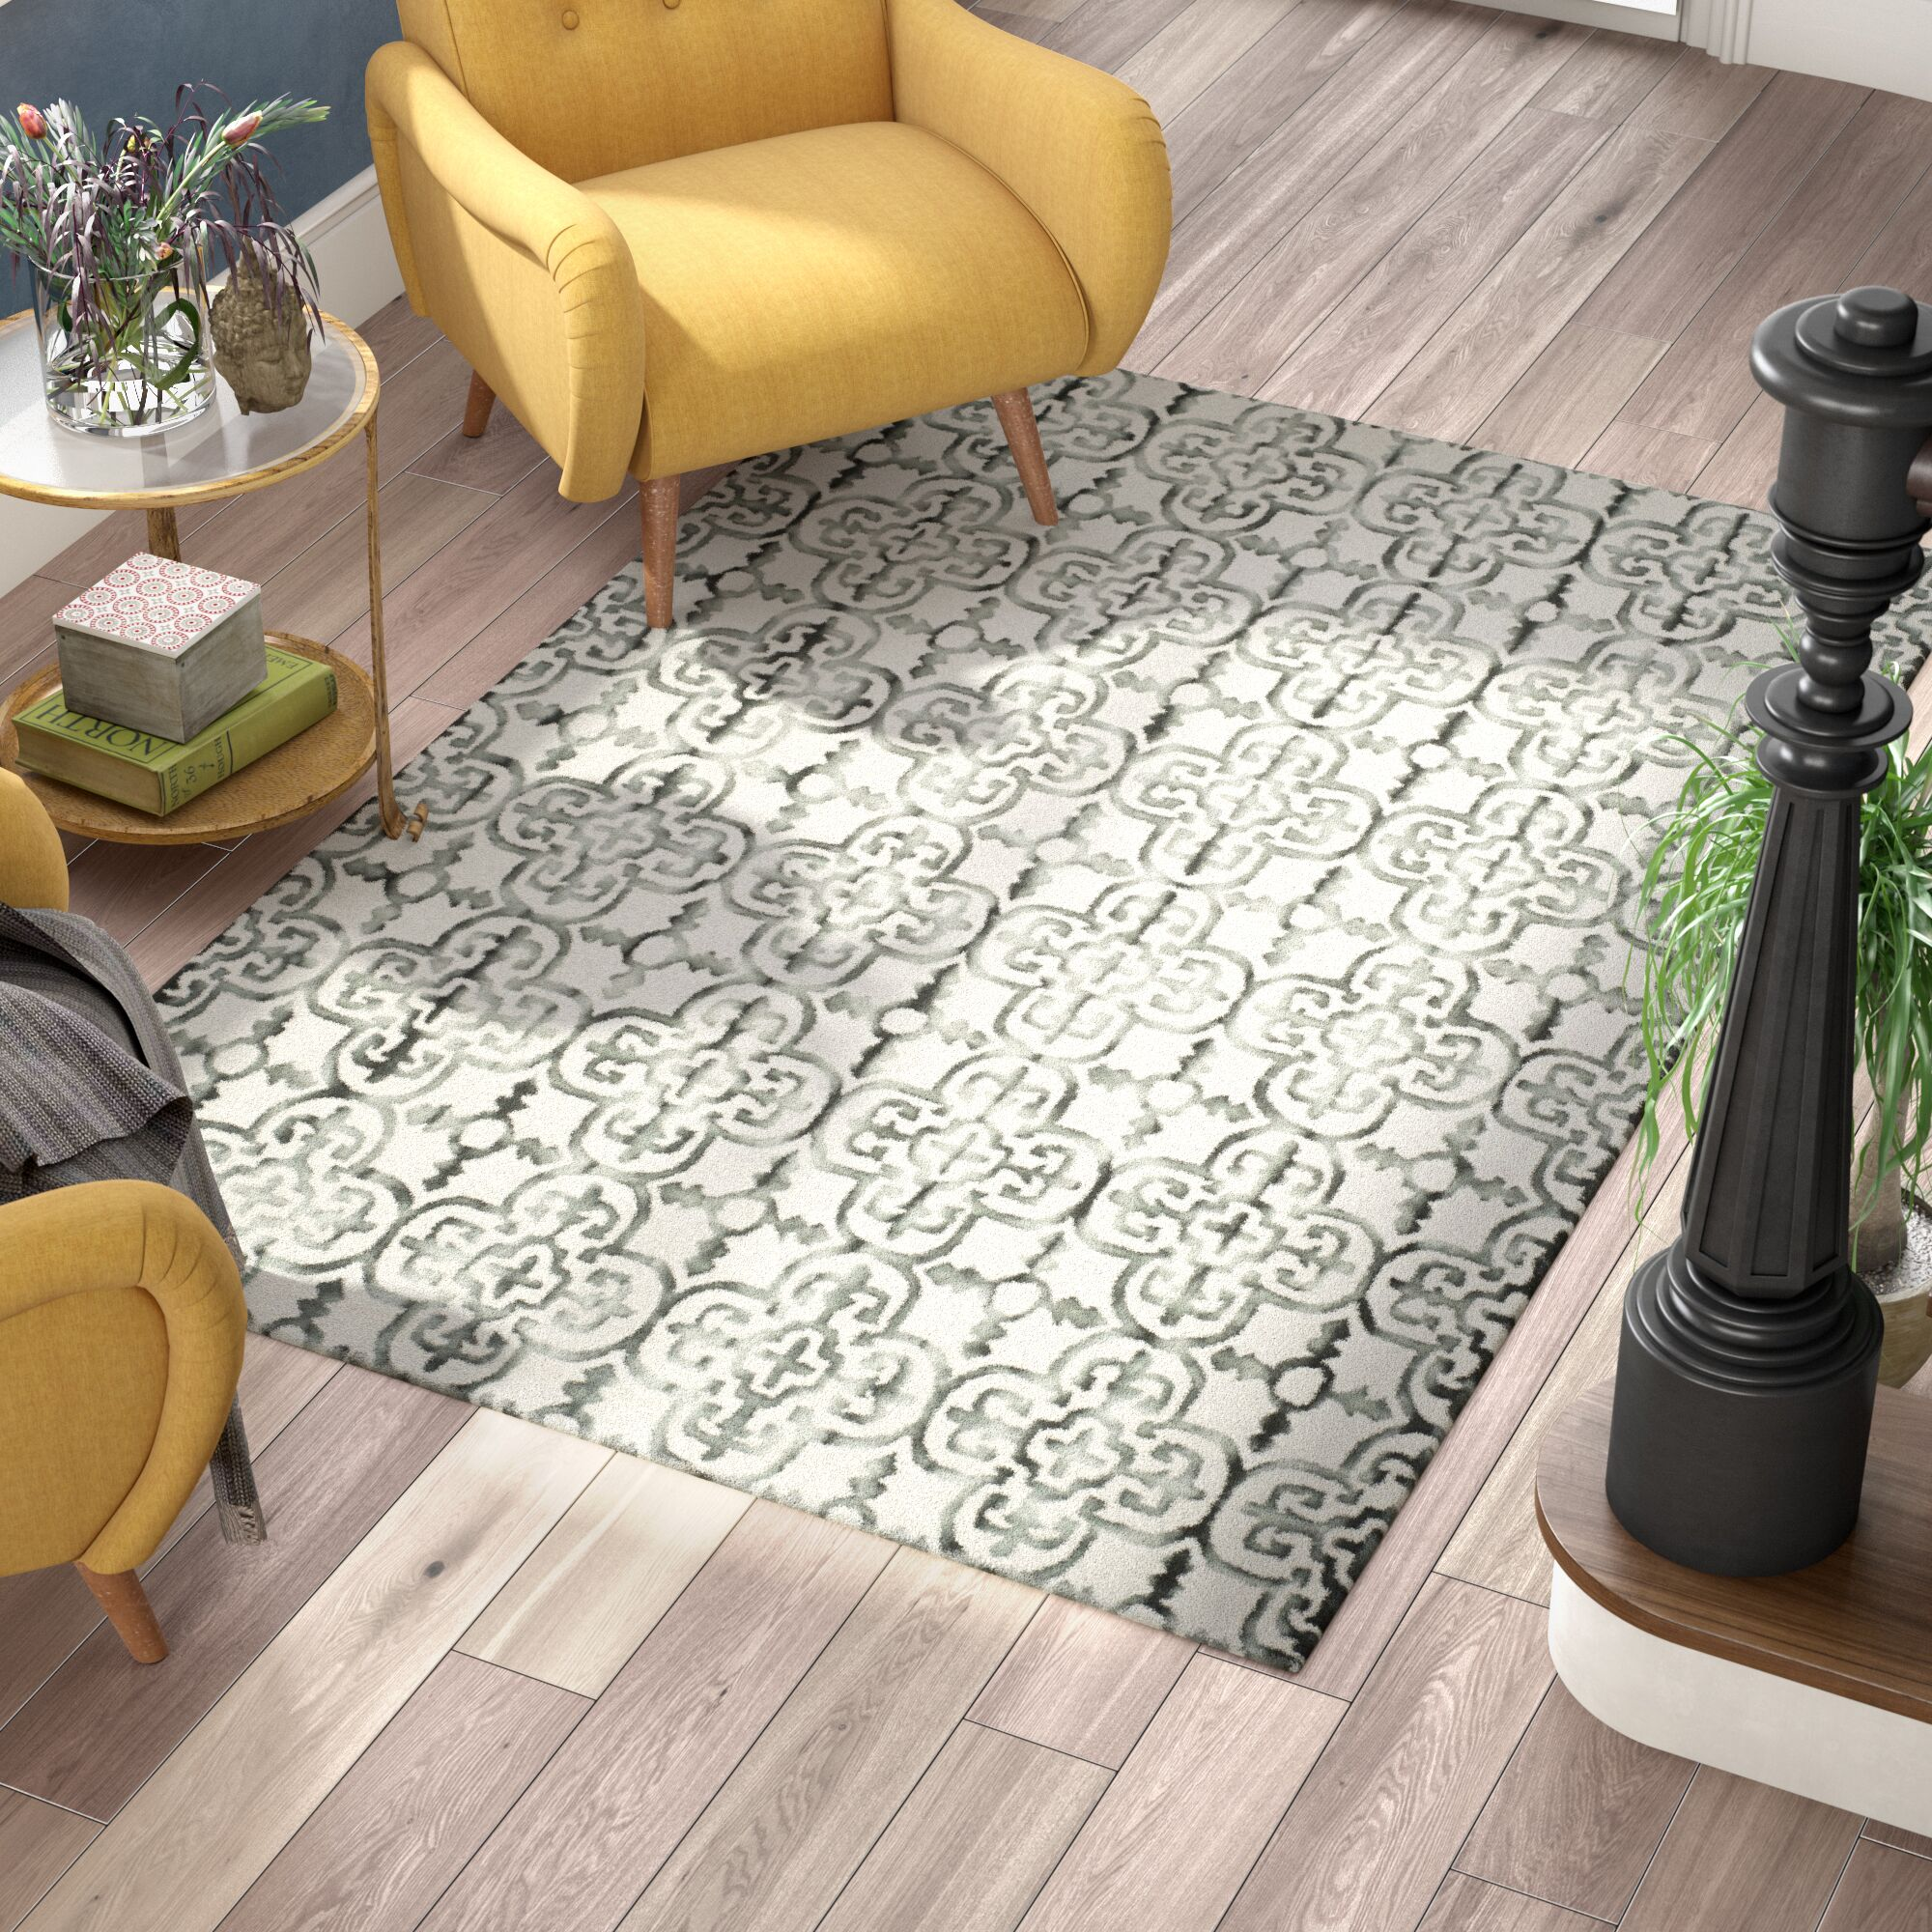 Naples Park Hand Tufted Wool Ivory Area Rug Rug Size: Runner 2'3